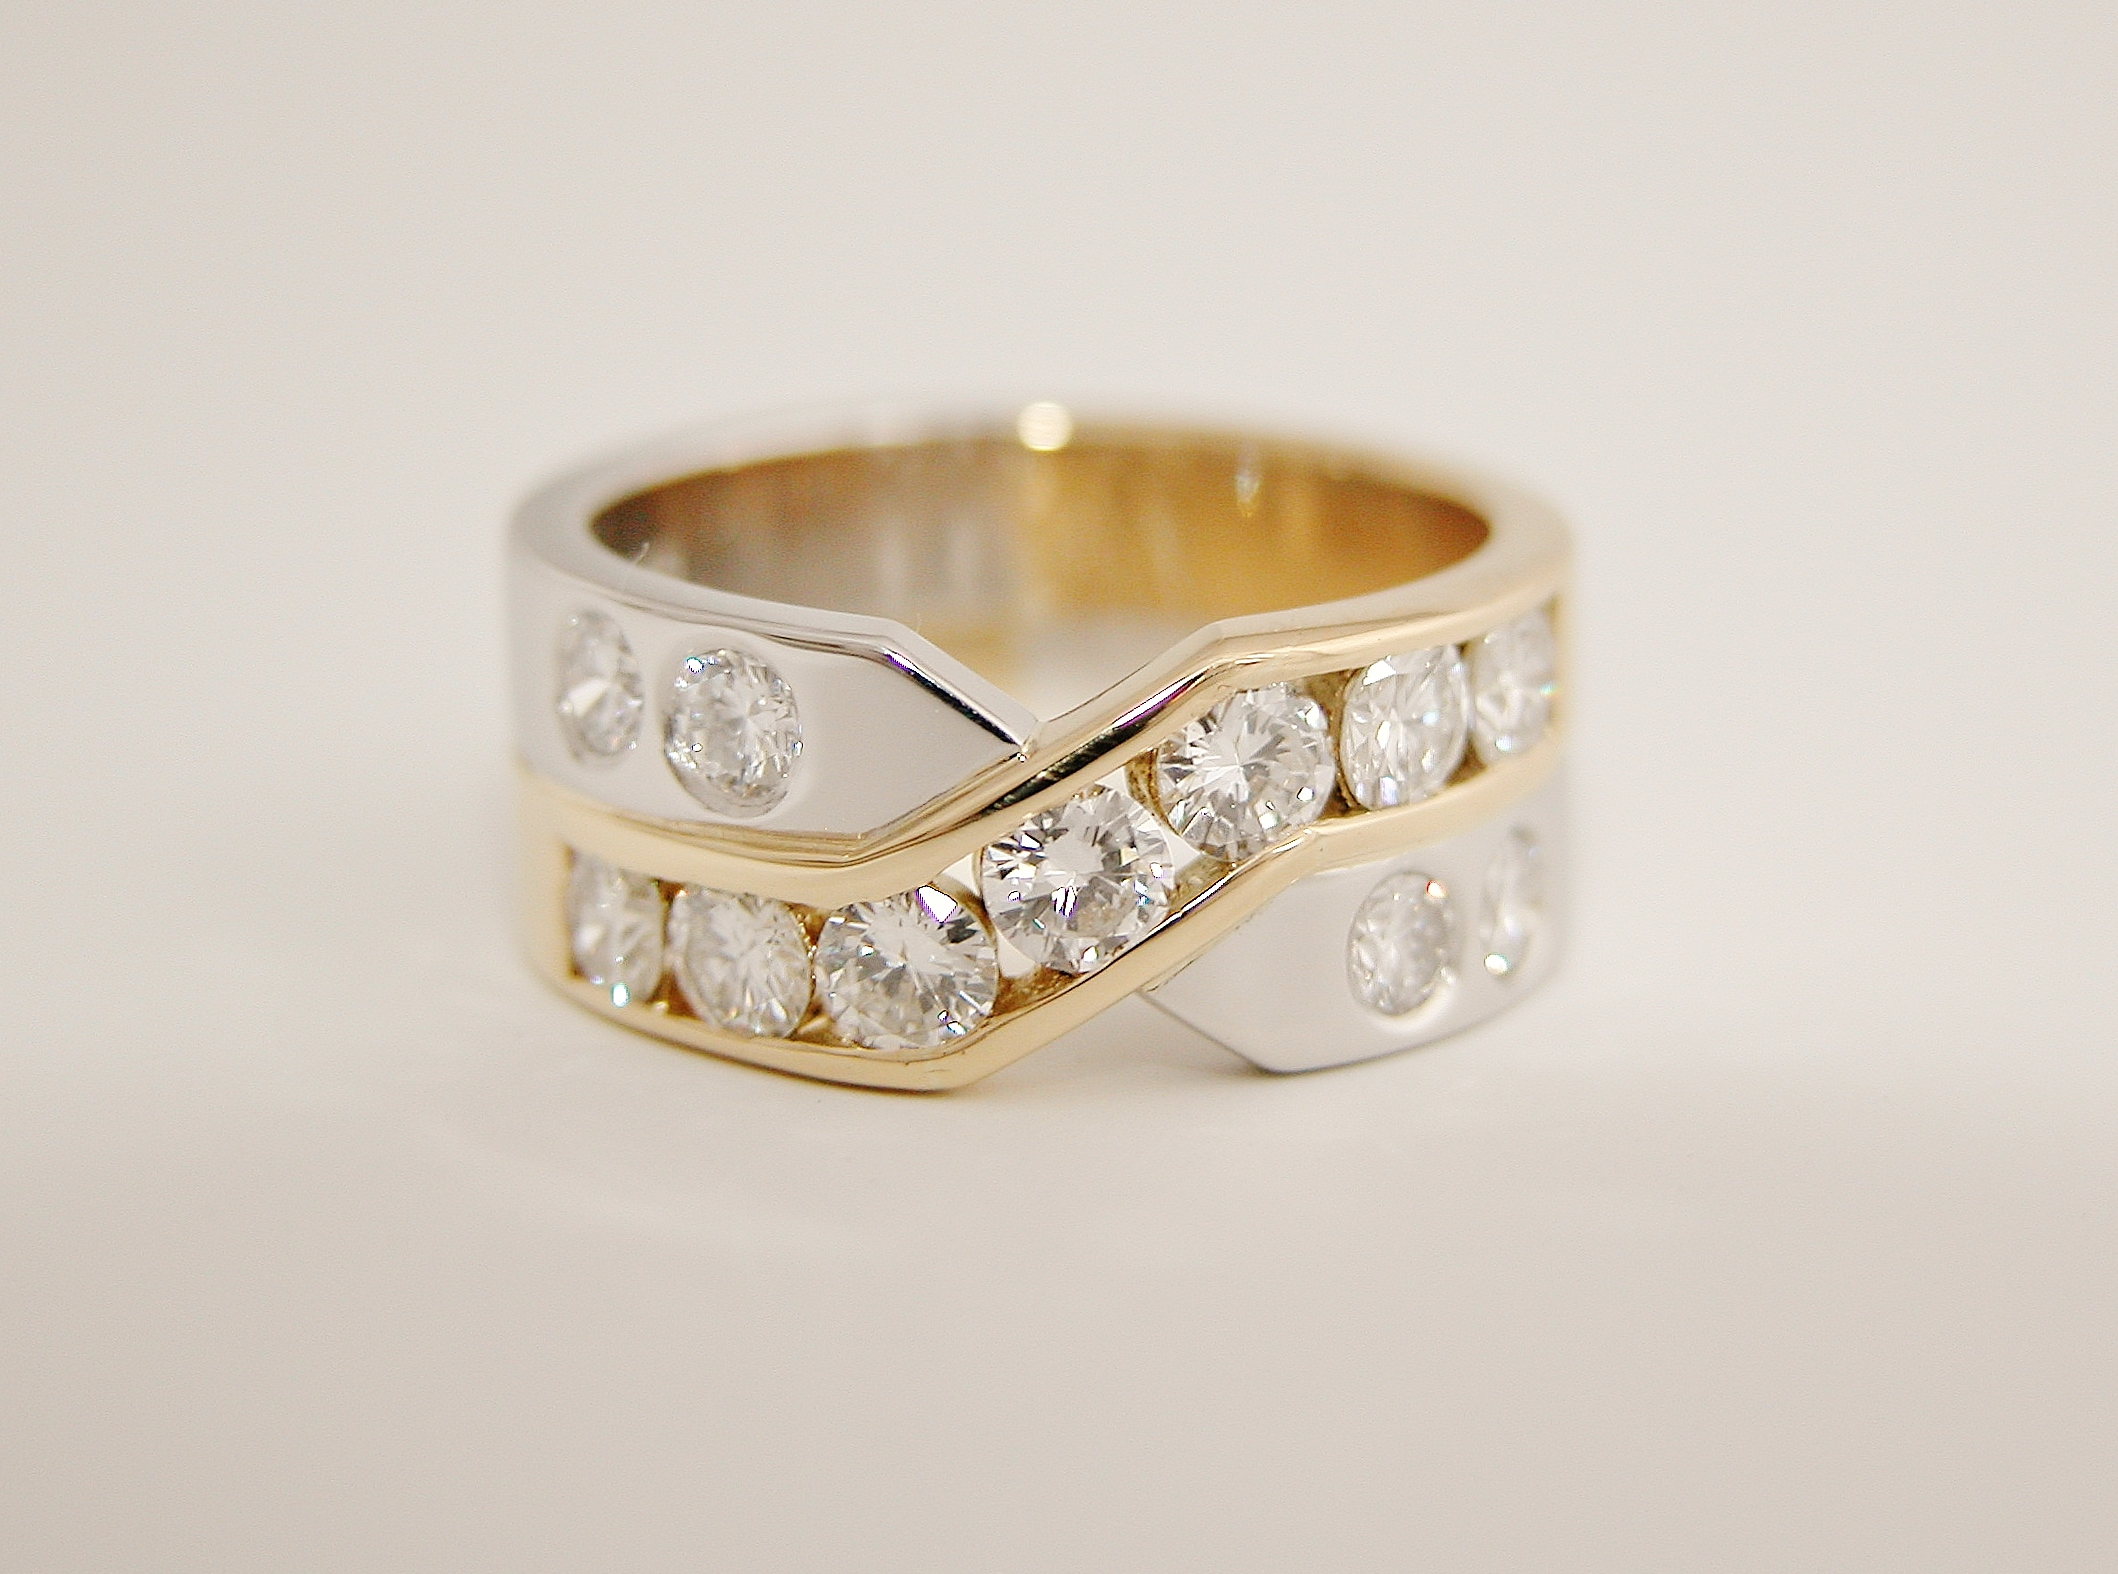 Platinum & 18ct. yellow gold 11 stone channel and flush set diamond cross over style ring.